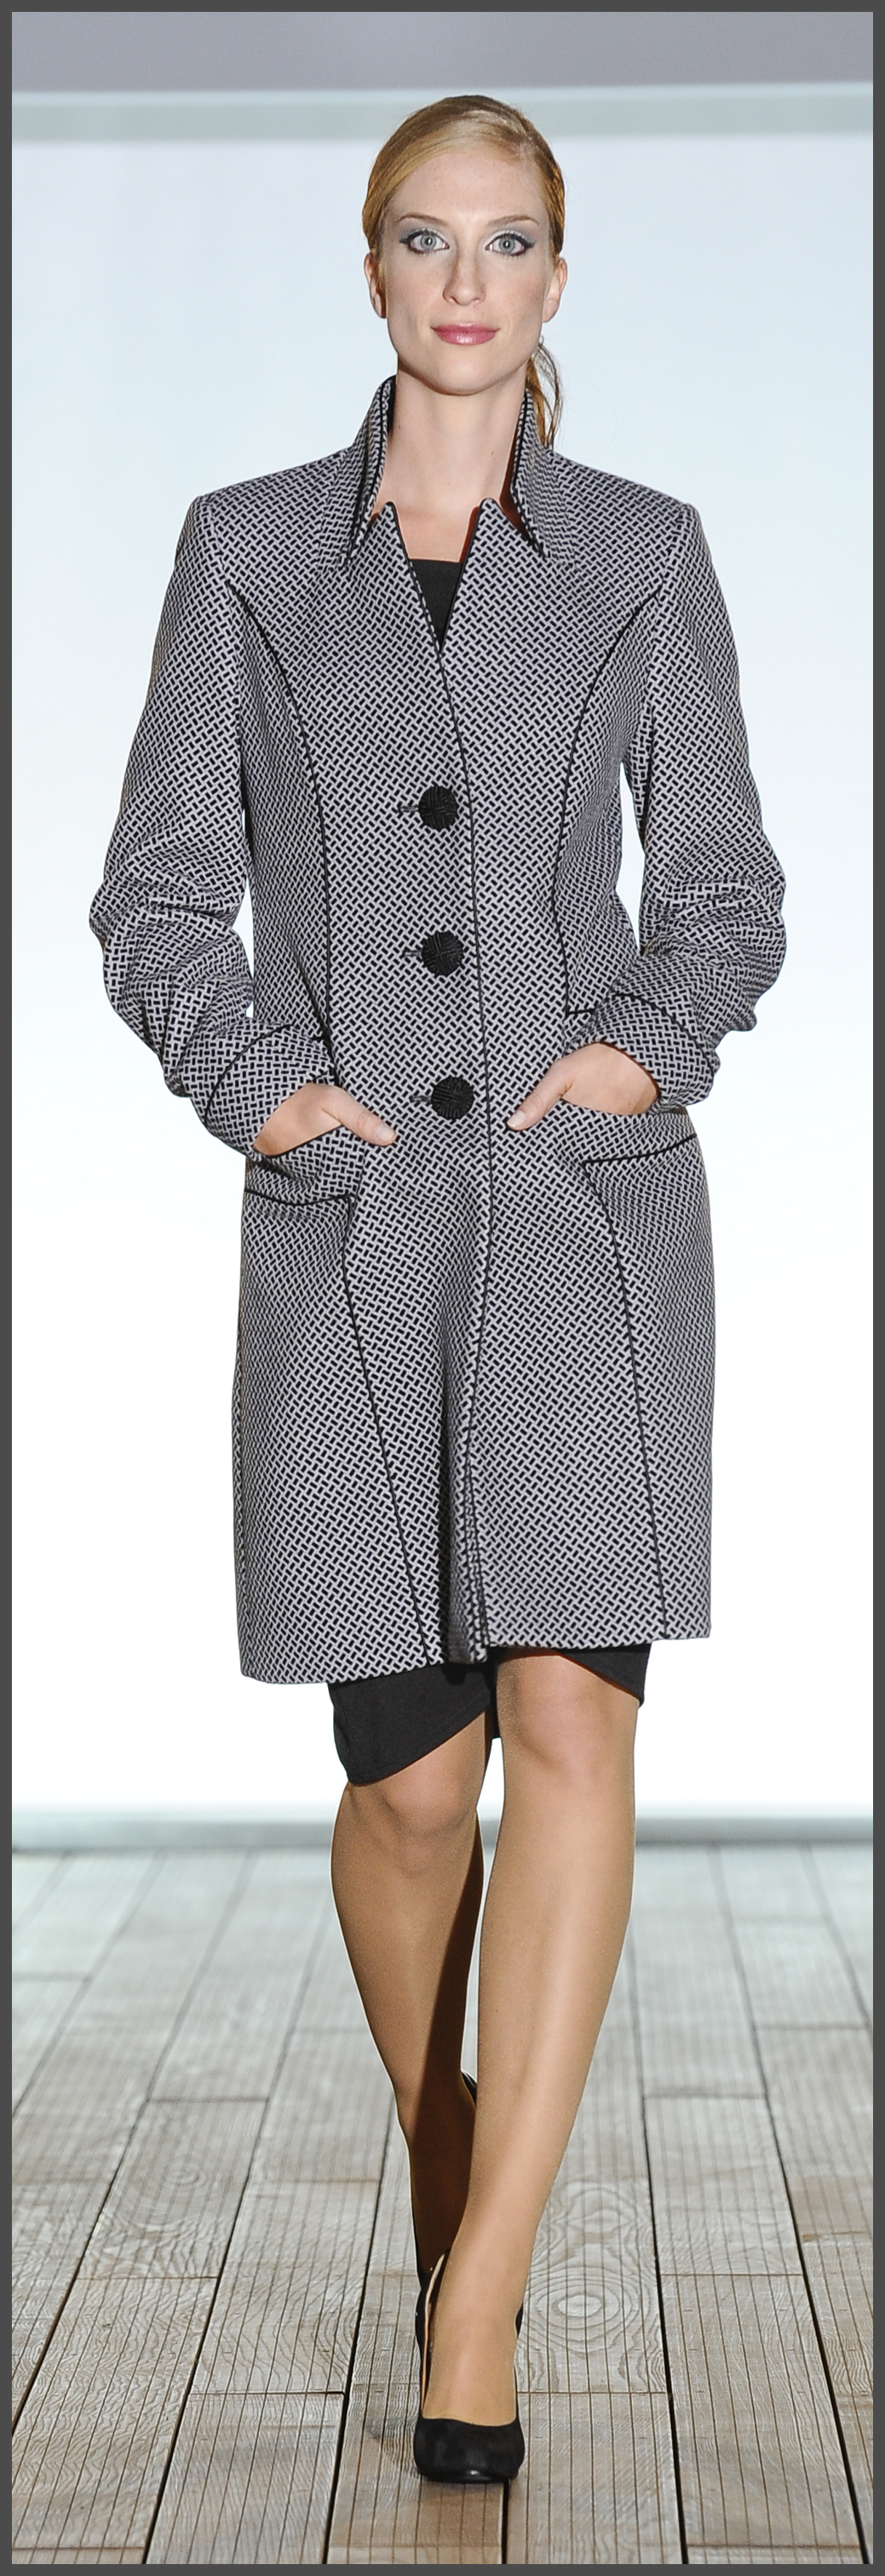 donnarosi-fall-winter-2012 (11).jpg